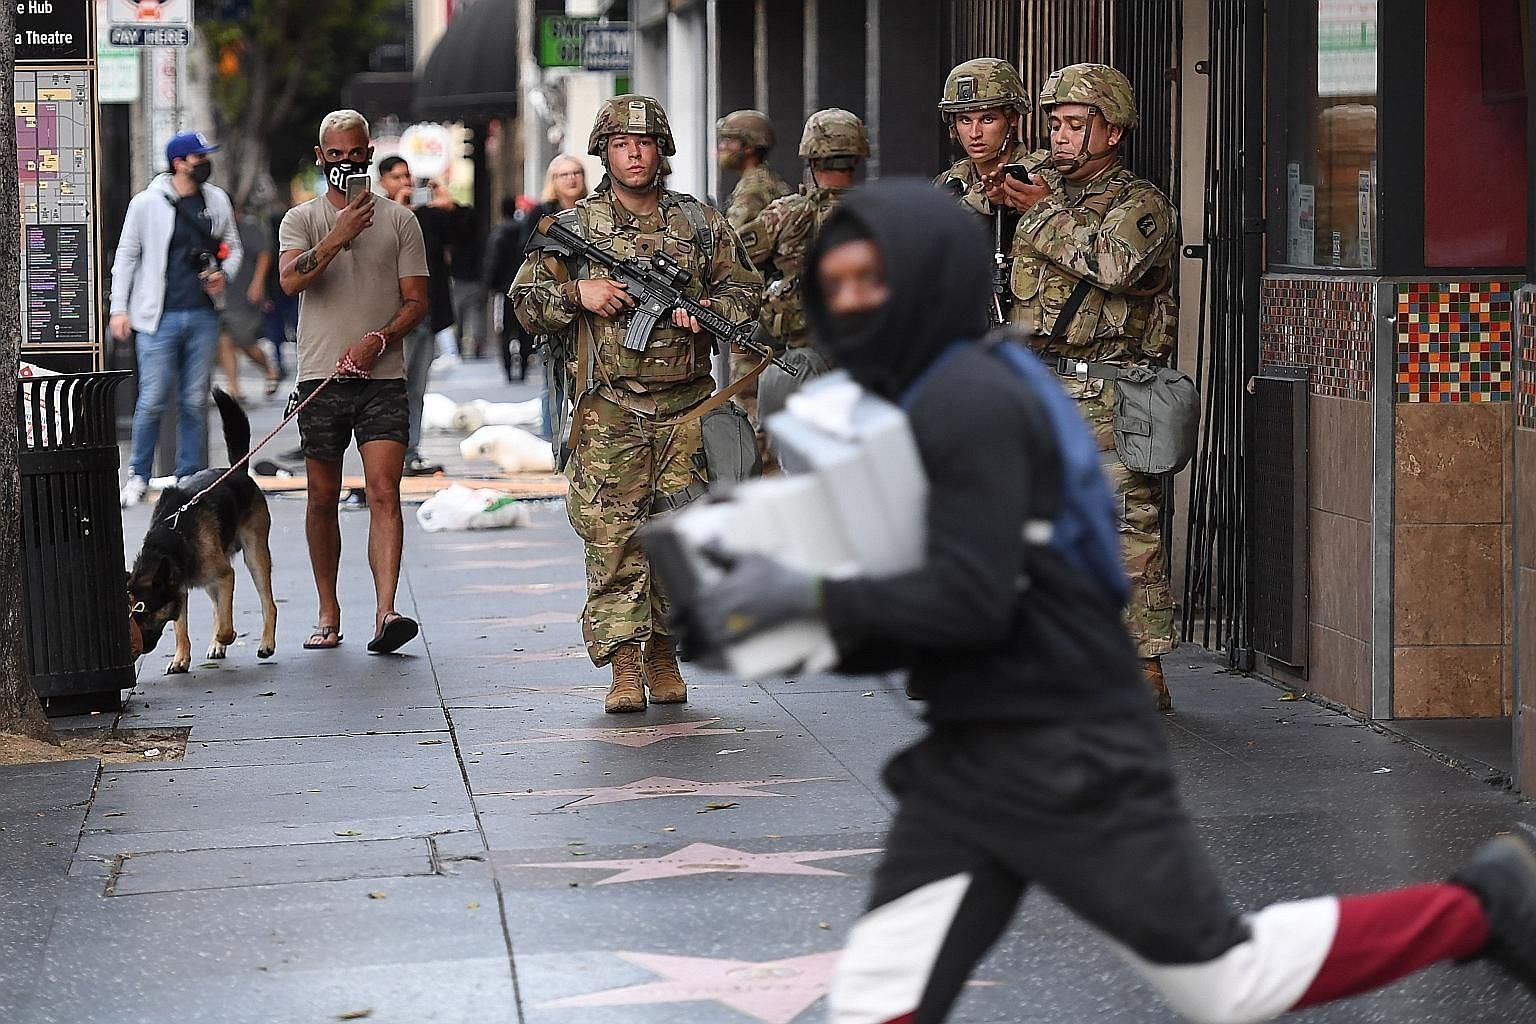 A looter running past National Guard personnel in Hollywood, California, on Monday. The protesters have comprised not just African Americans but to a large extent white people and also, by and large, young people. They have been mostly peaceful durin